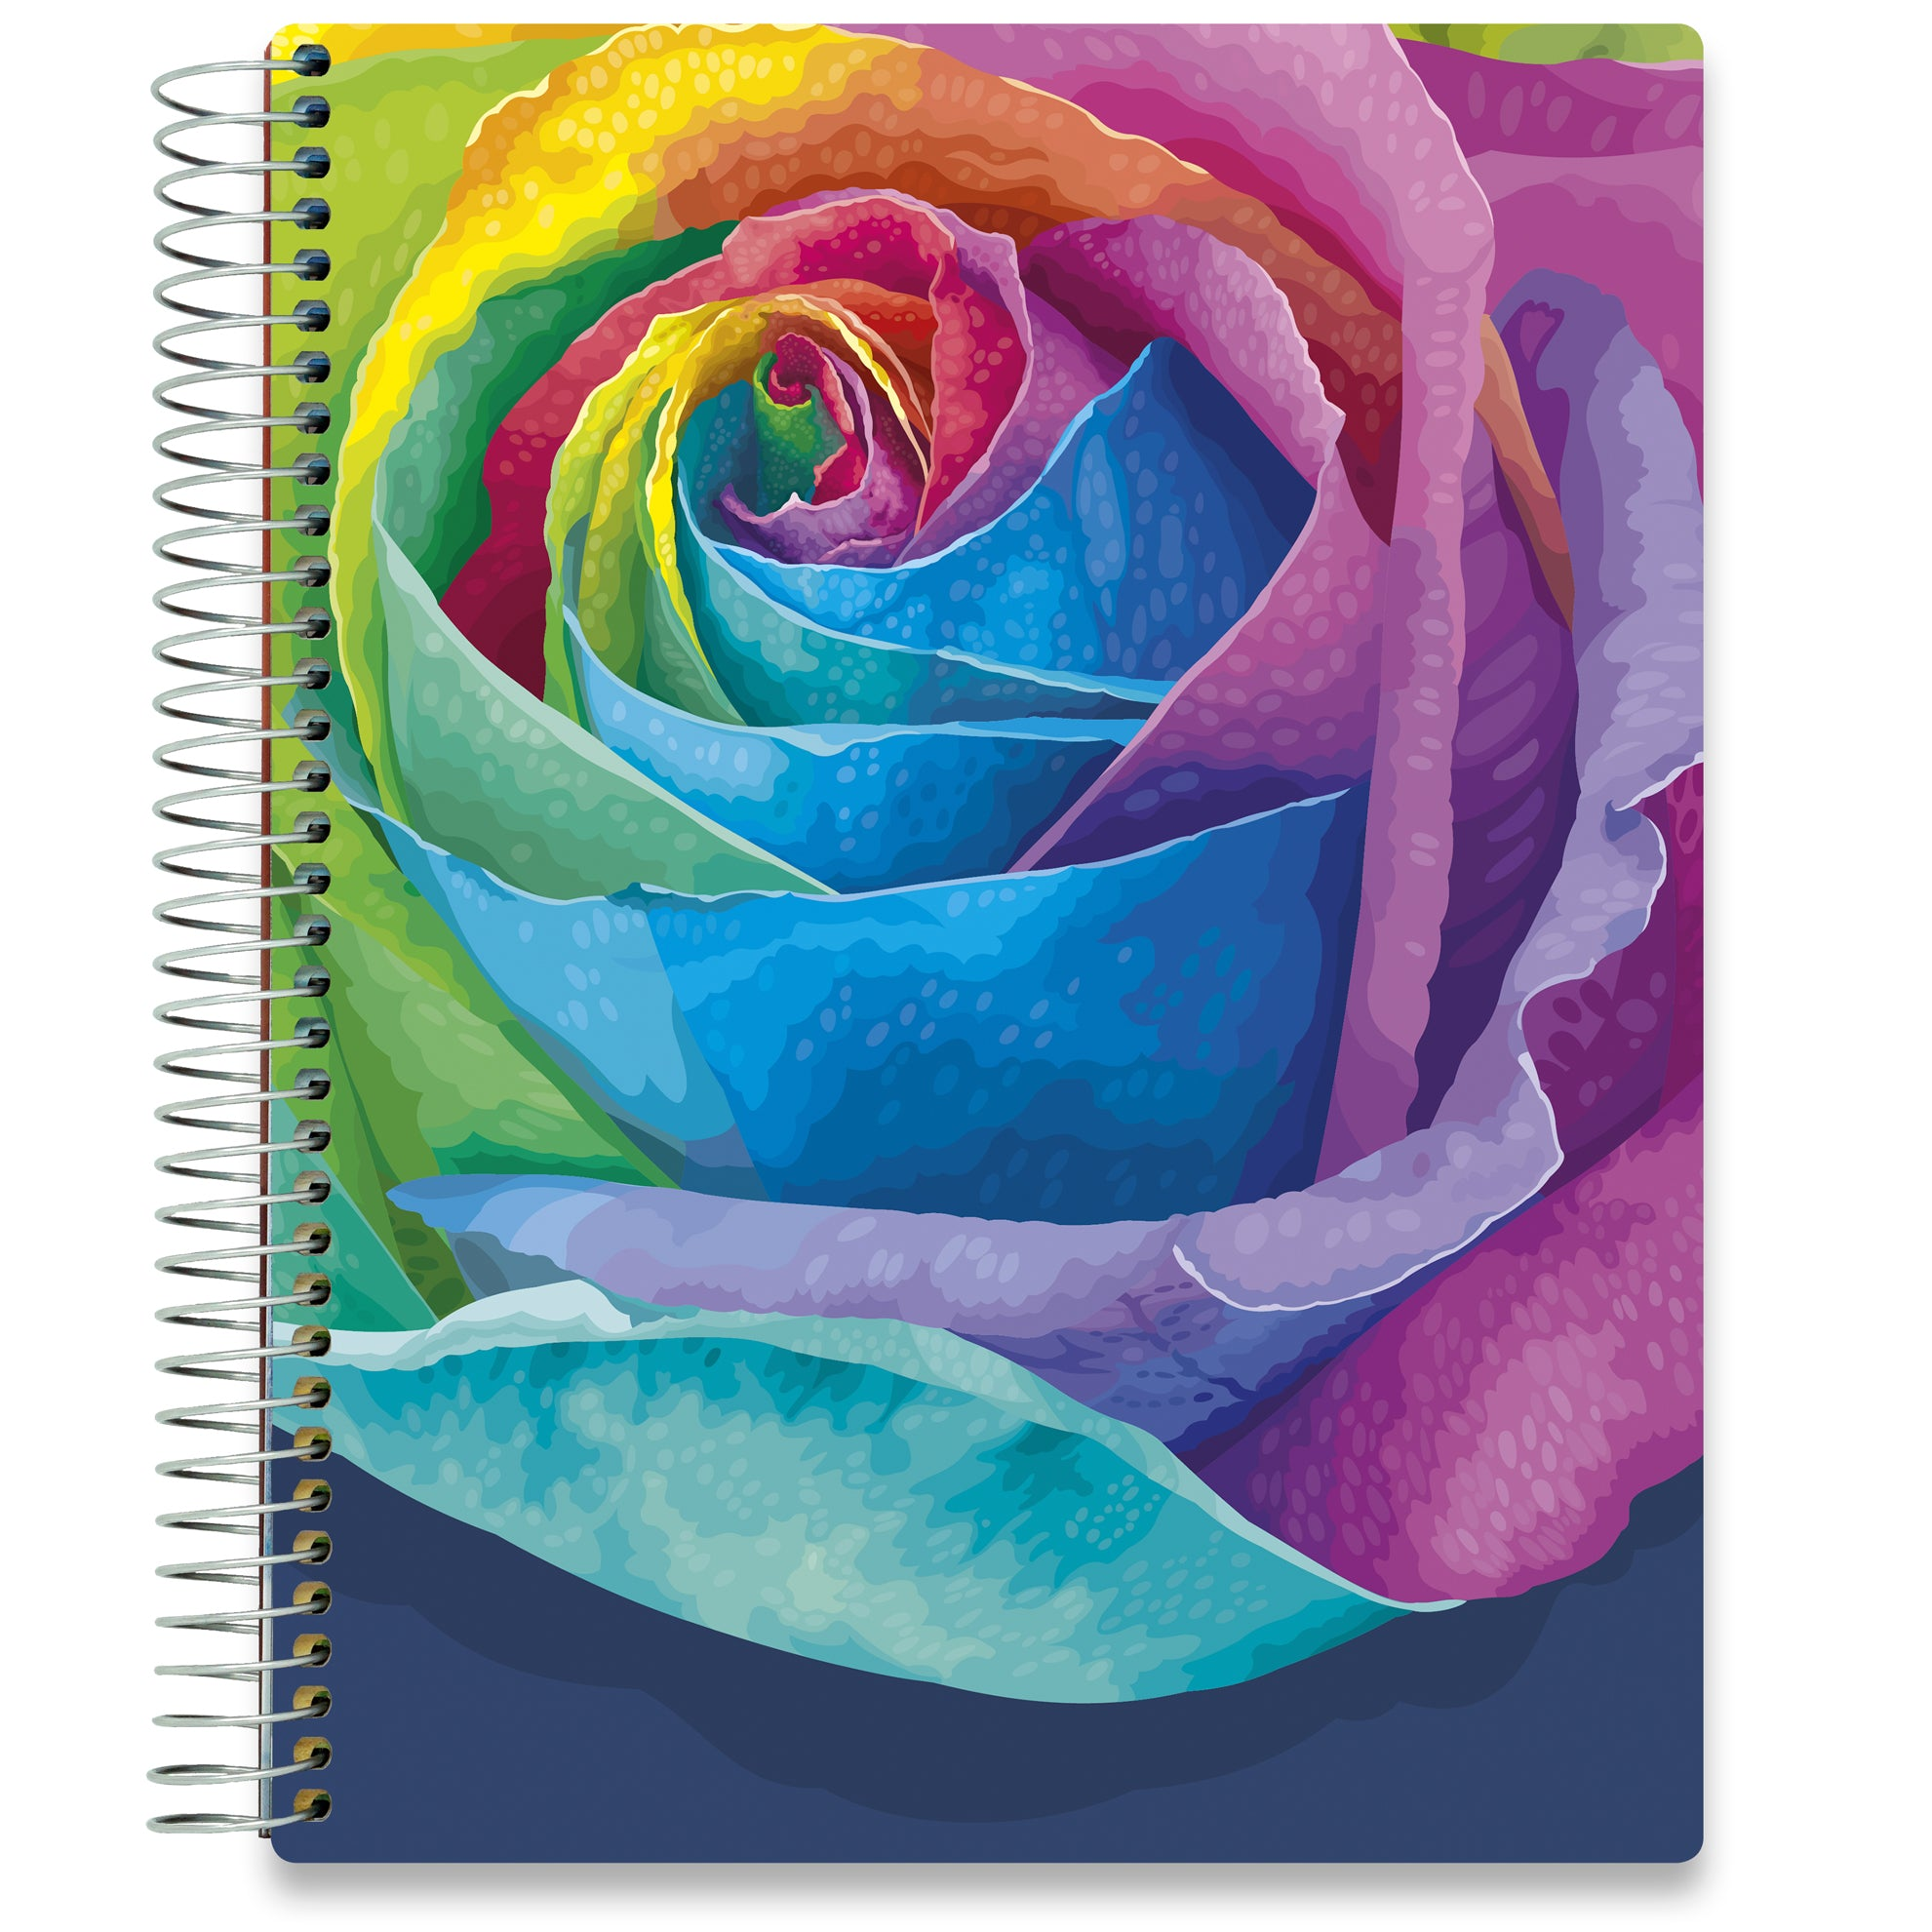 NEW: April 2020-2021 Planner - 8.5x11 - Rainbow Rose-Office Product-Tools4Wisdom